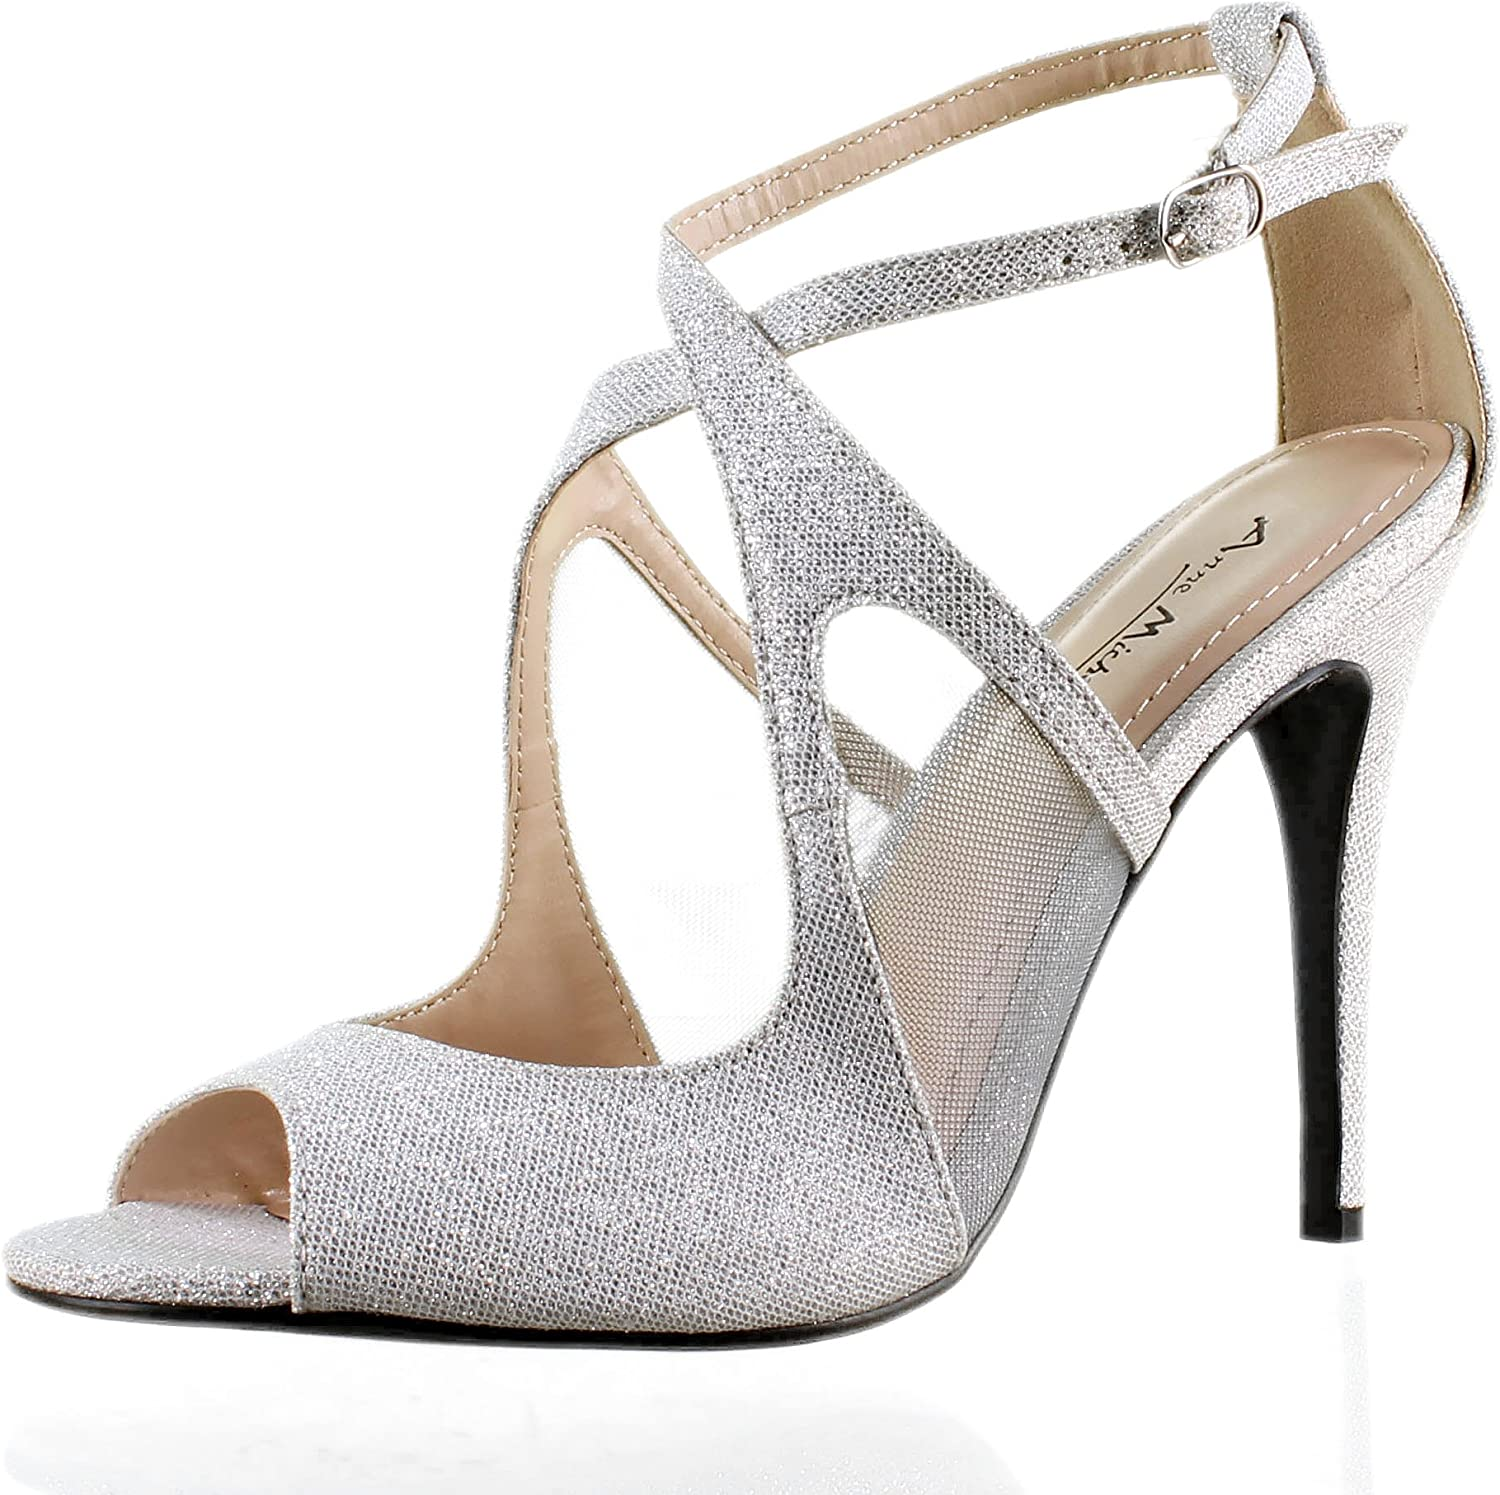 Small Silver Heels